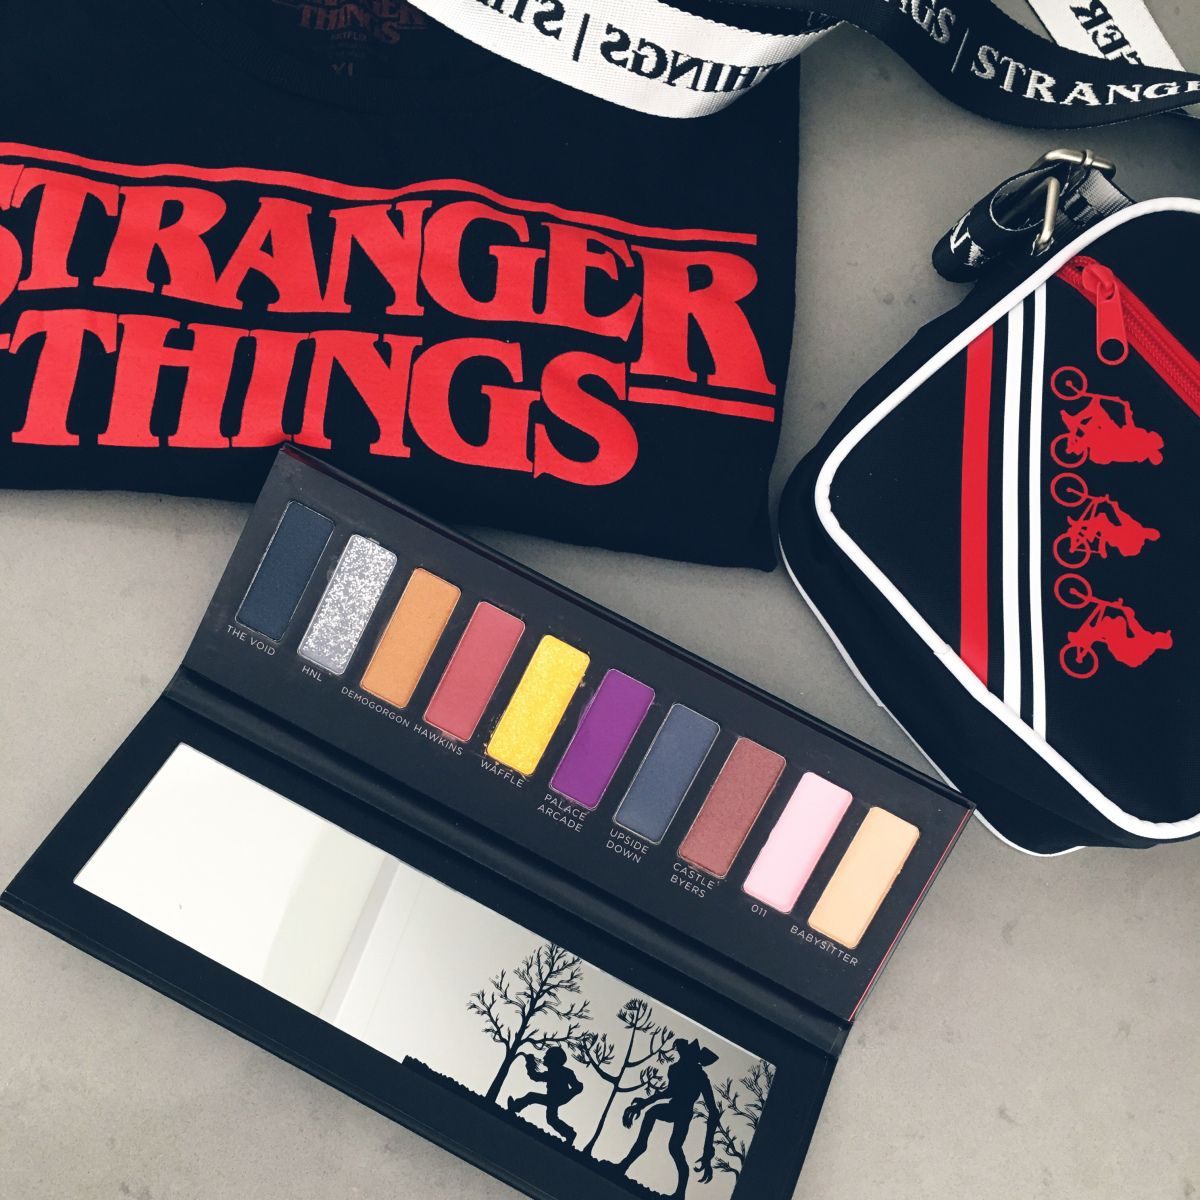 STRANGER THINGS Makeup Palette and Style Makeup palette